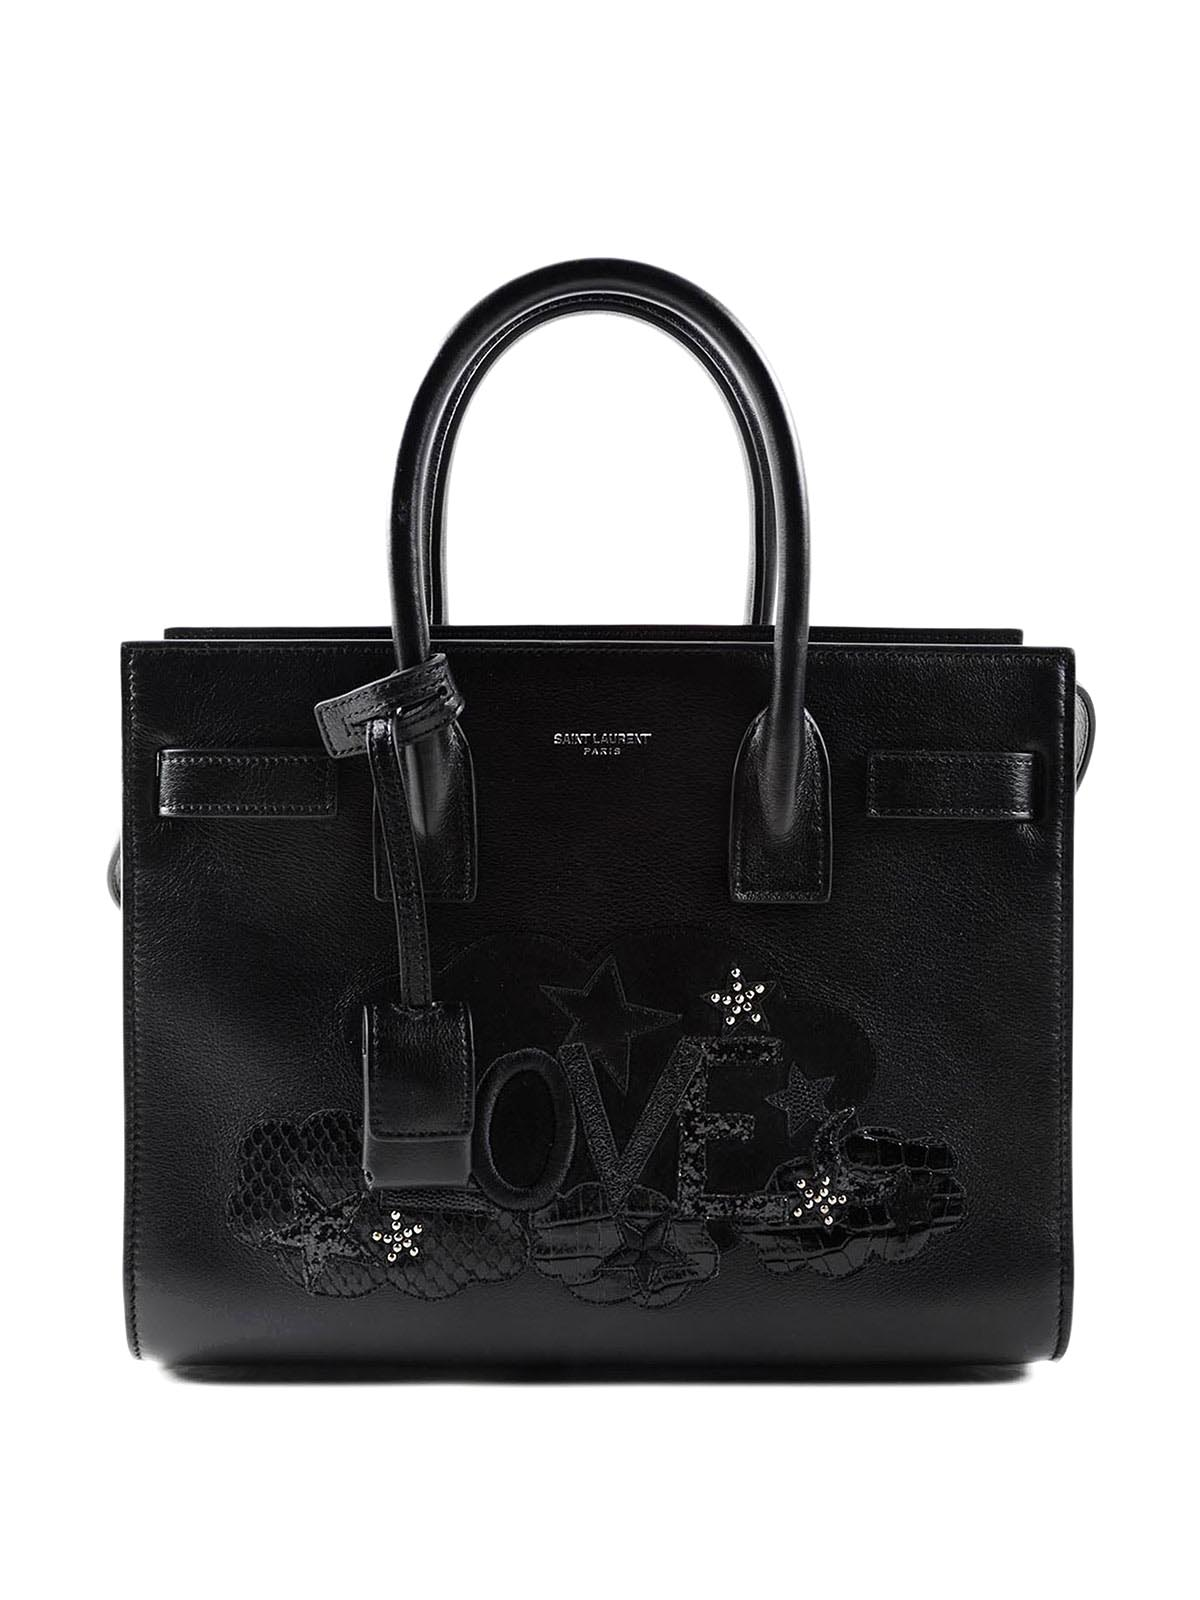 baby sac de jour bag by saint laurent totes bags ikrix. Black Bedroom Furniture Sets. Home Design Ideas